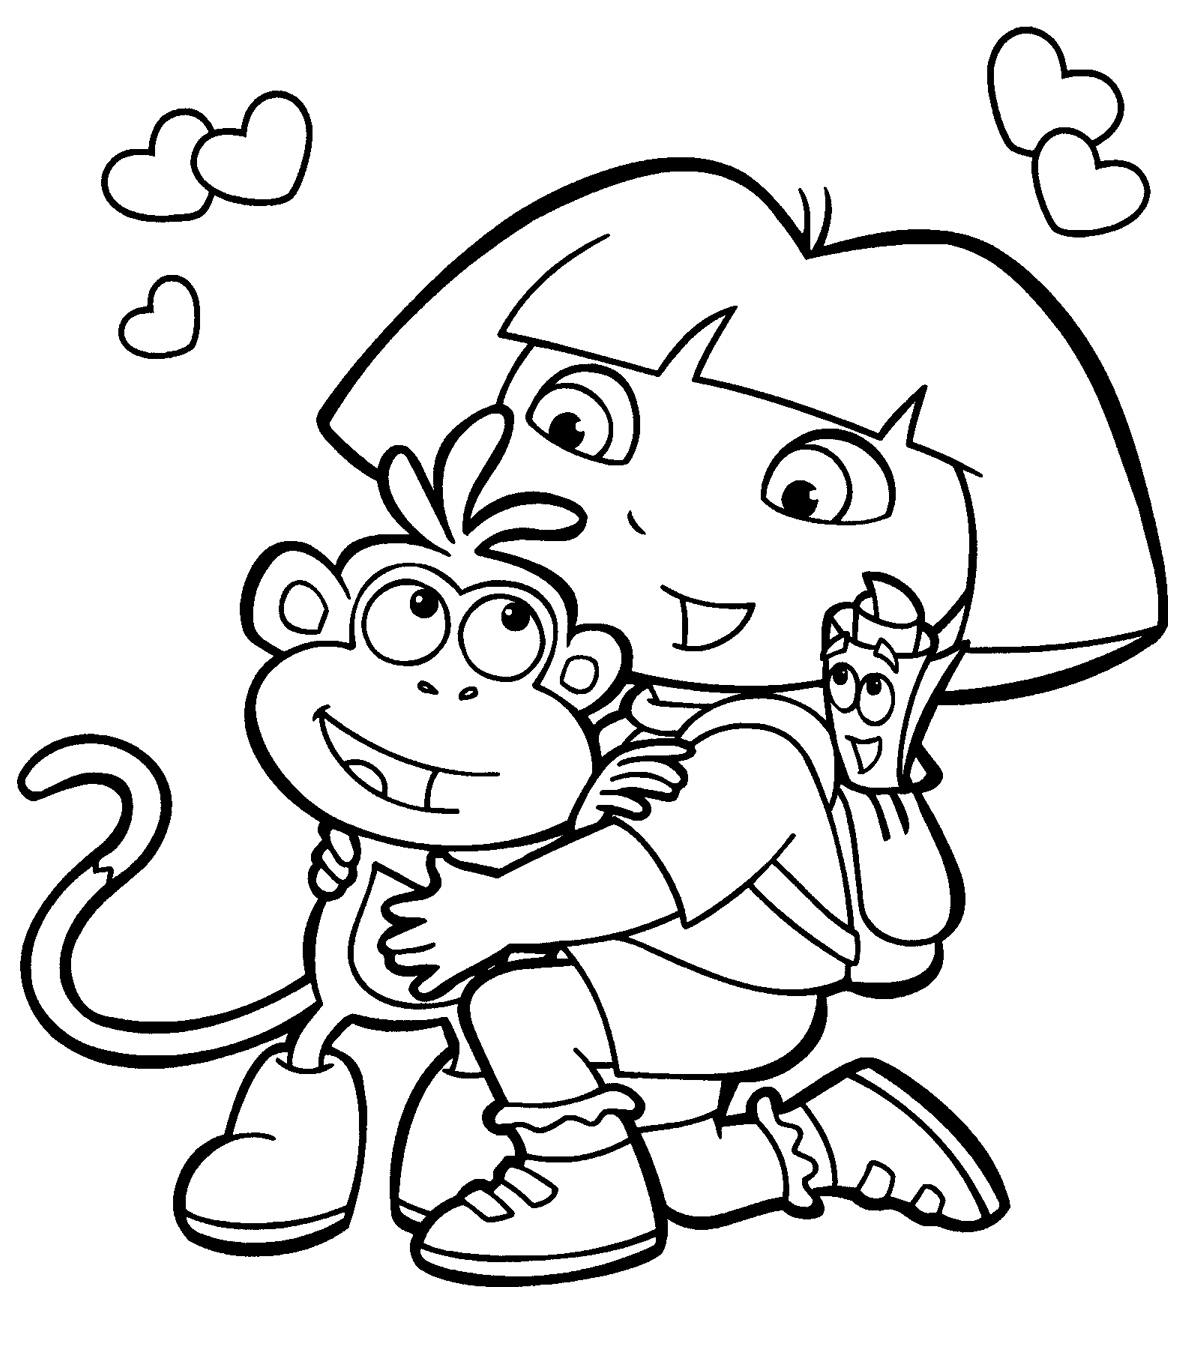 Free printable dora the explorer coloring pages for kids for Dora the explorer coloring pages online free